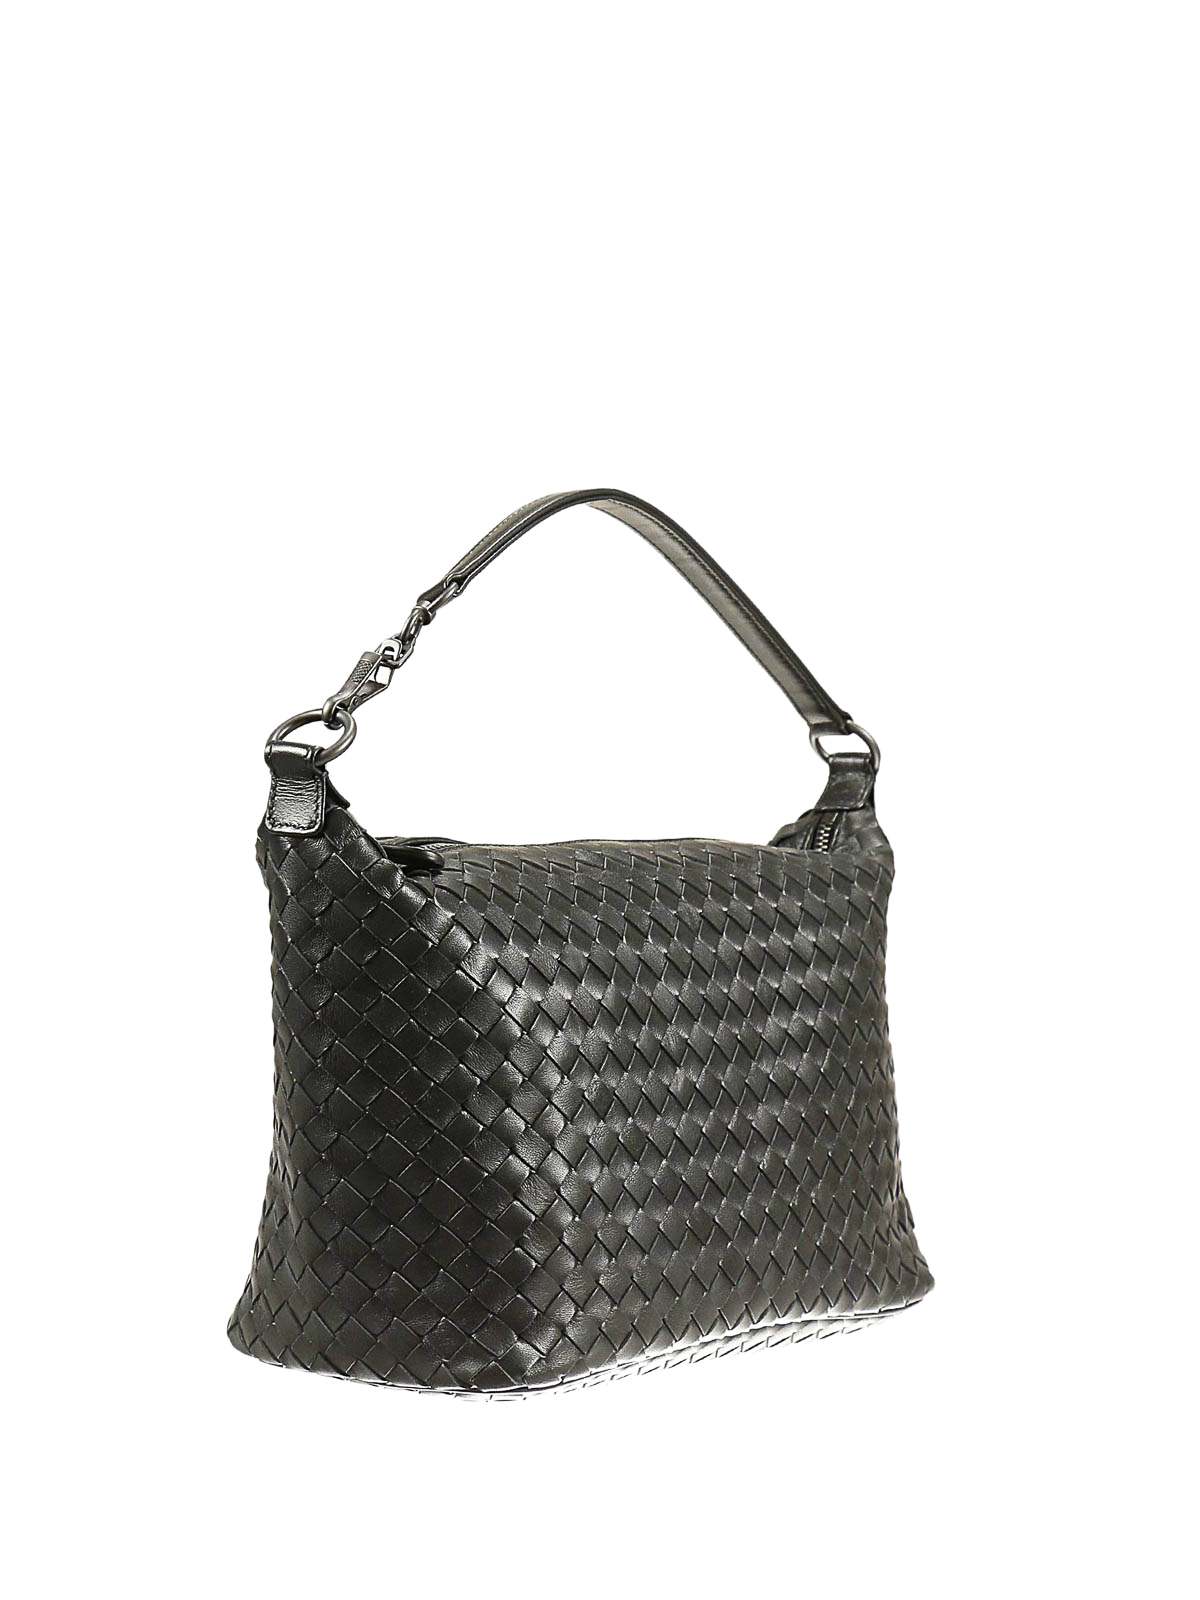 a3fcbb7cc4 BOTTEGA VENETA  shoulder bags online - Intrecciato nappa small bag